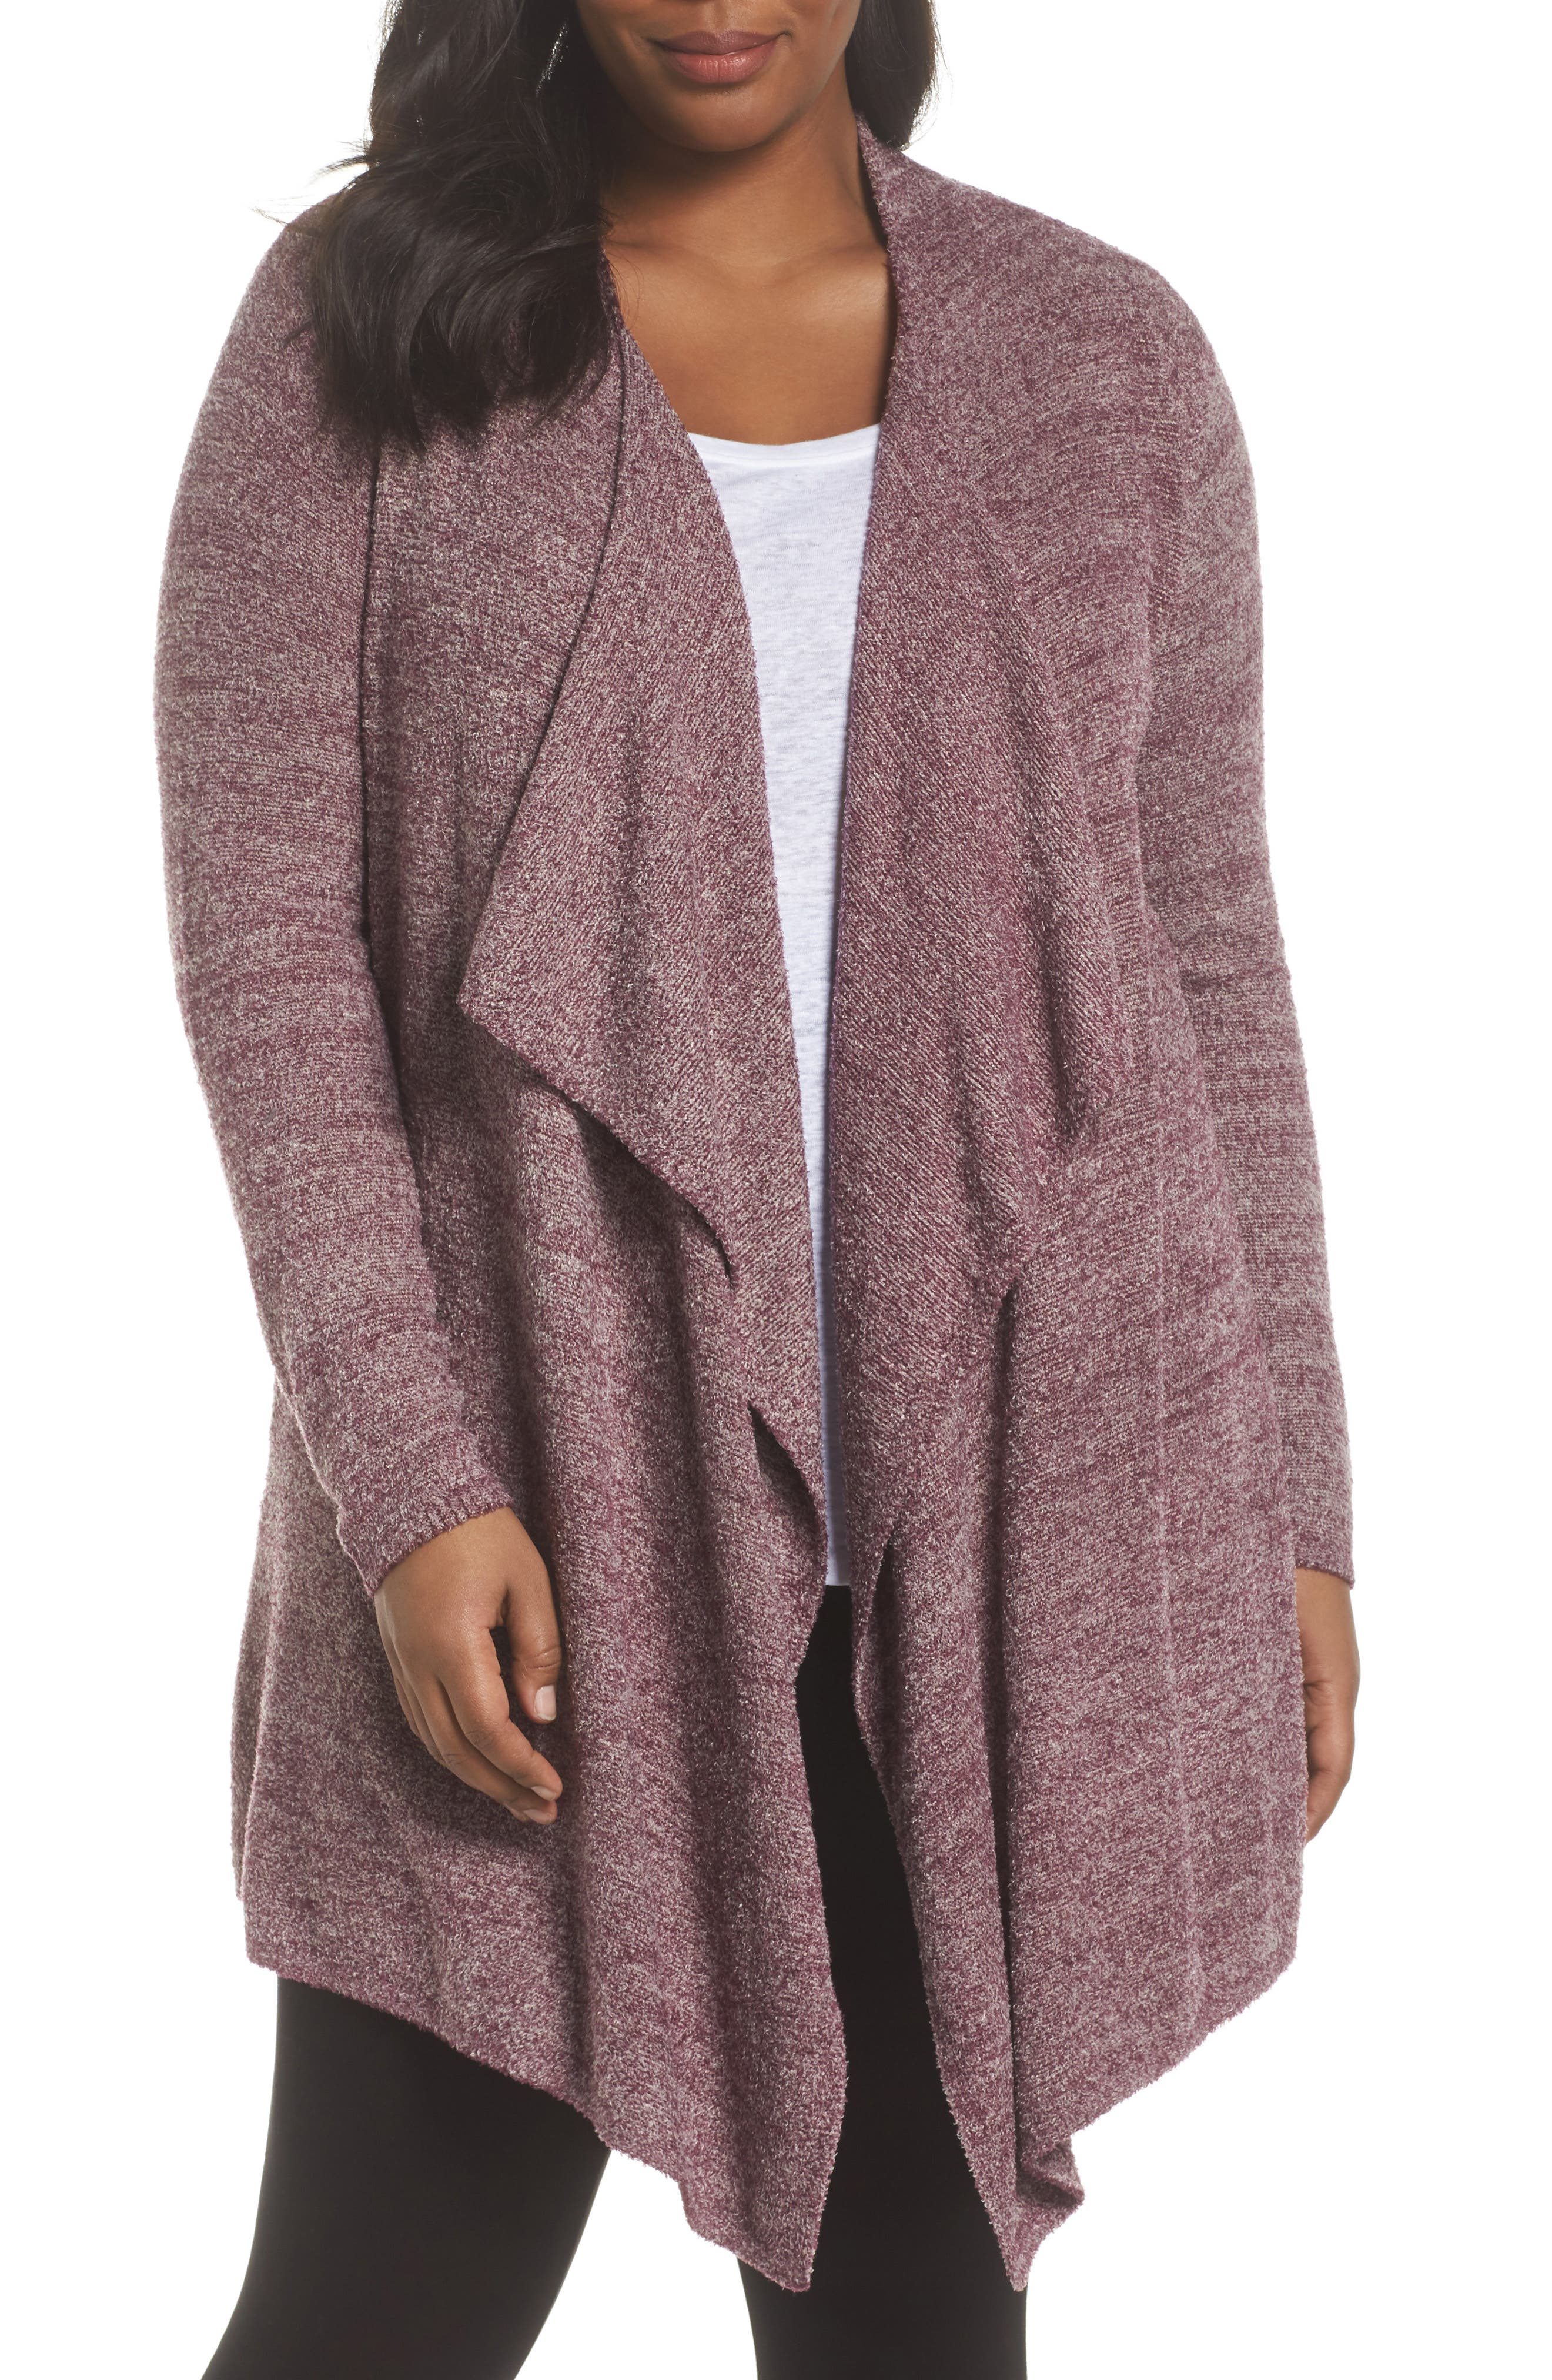 CozyChic Lite<sup>®</sup> Calypso Wrap Cardigan,                             Main thumbnail 1, color,                             Burgundy/ Stone